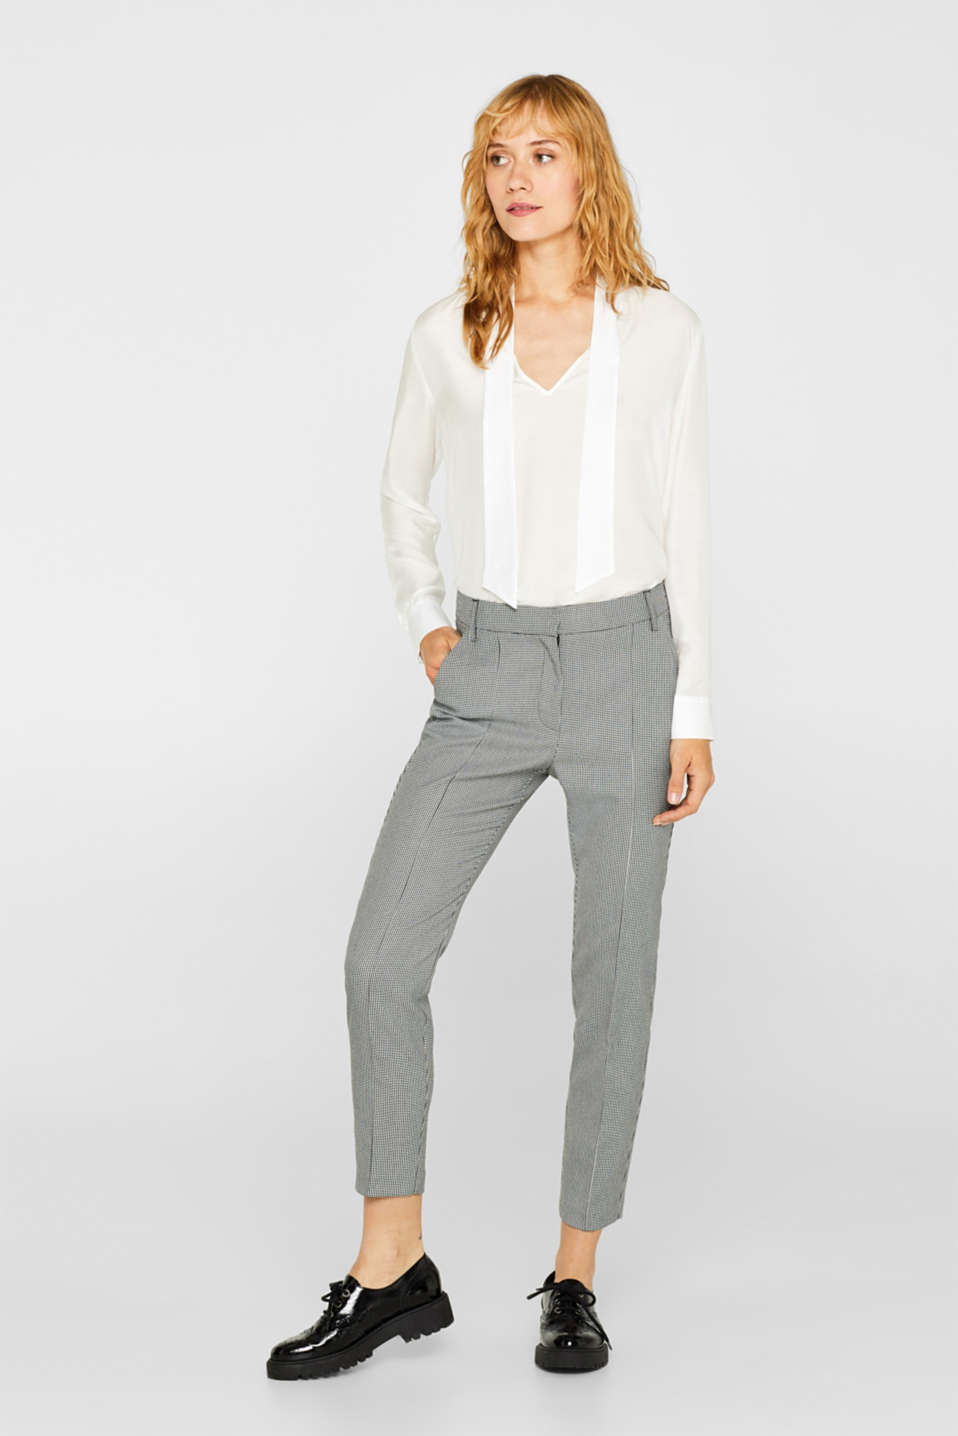 Esprit - Ankle-length stretch trousers with a houndstooth pattern